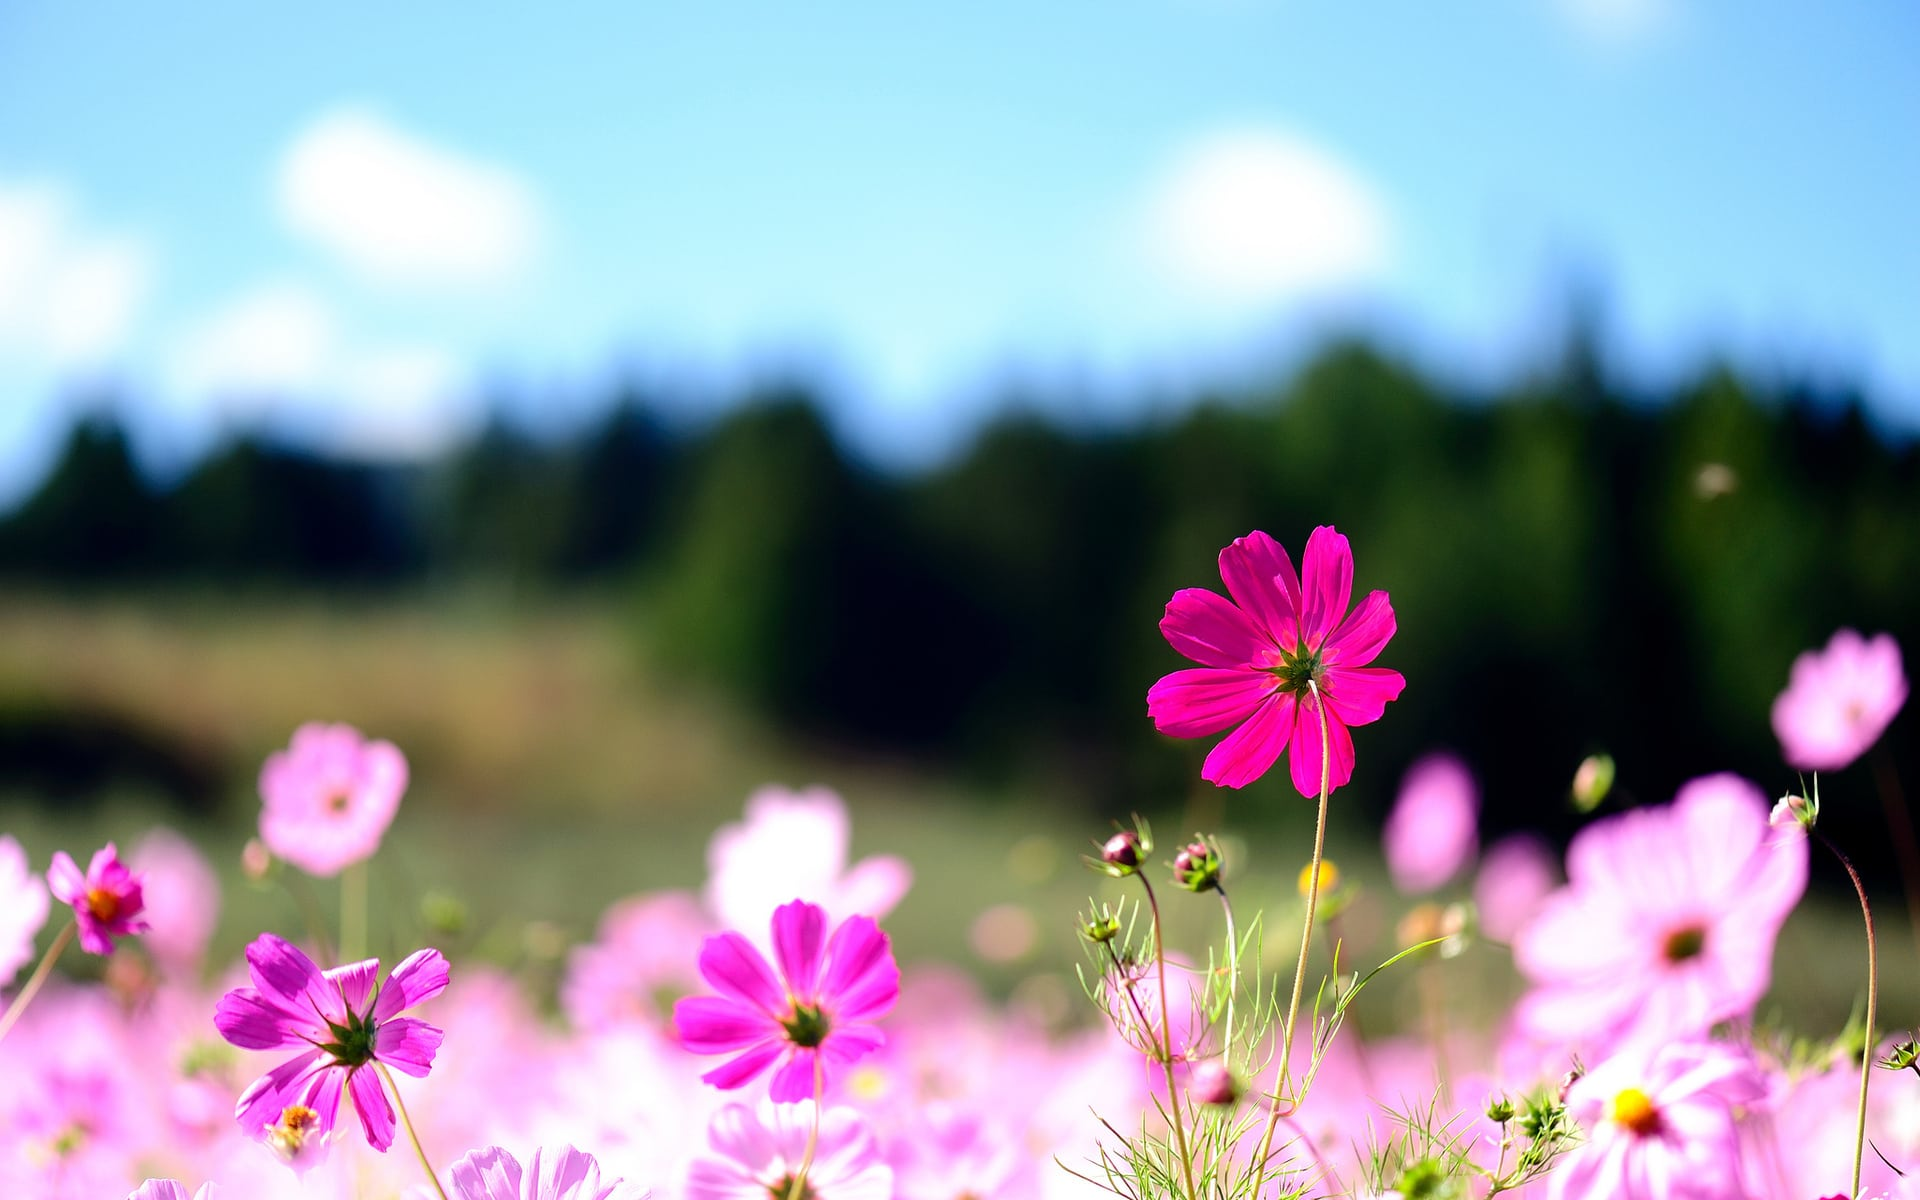 Beautiful Floral Wallpaper for Desktop Best 40 Smashing 1920x1200